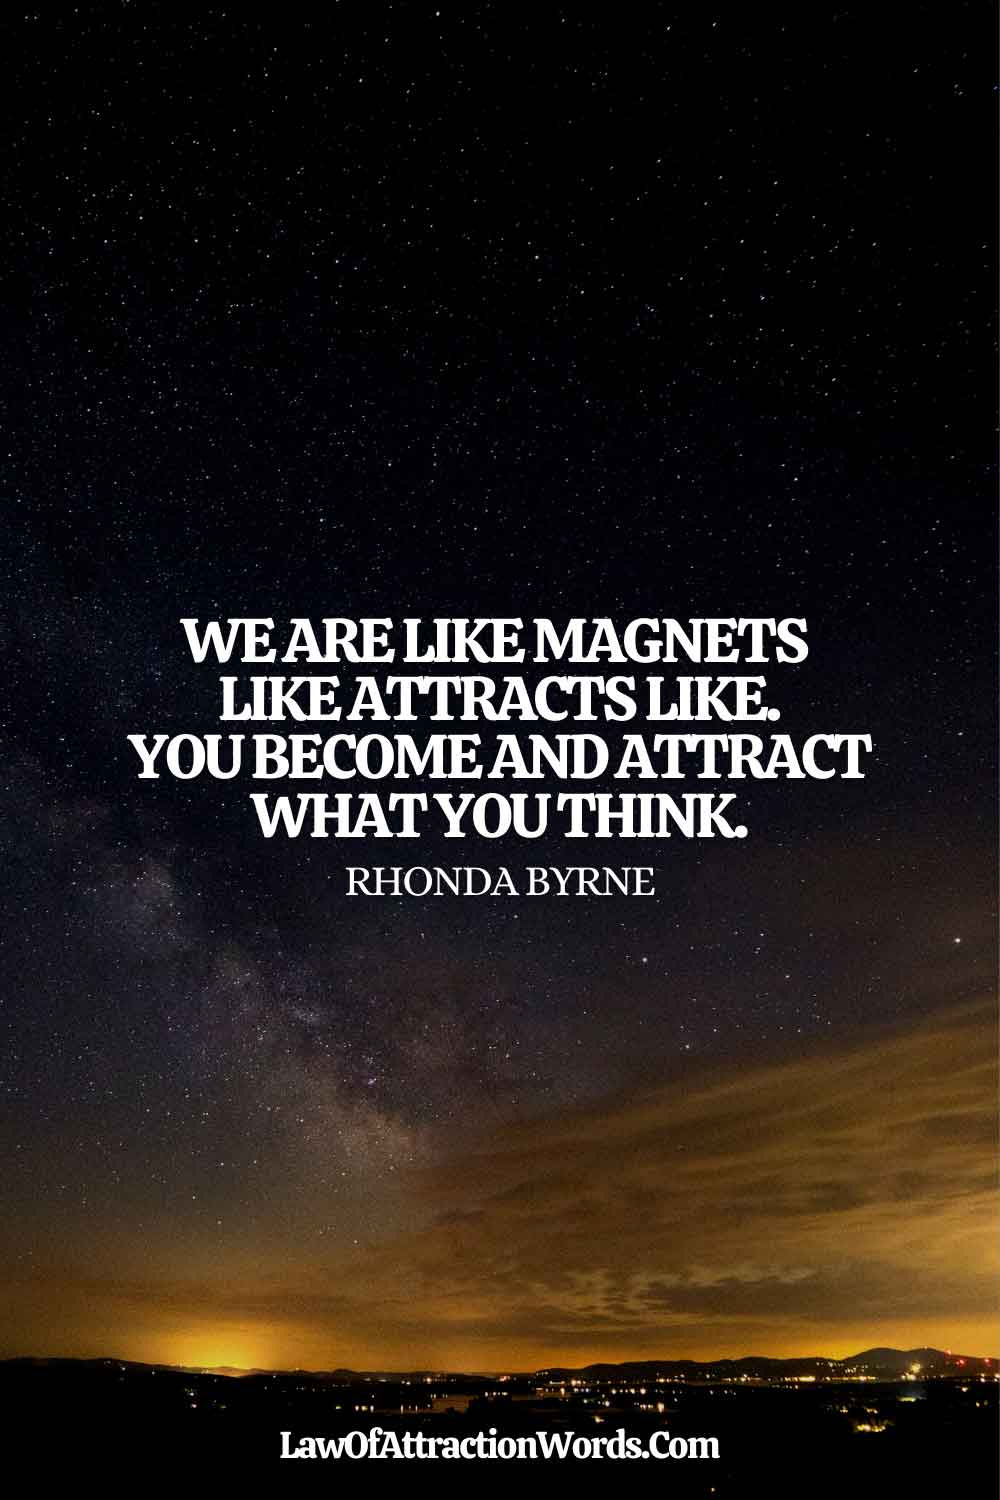 Best Law Of Attraction Quotes Money